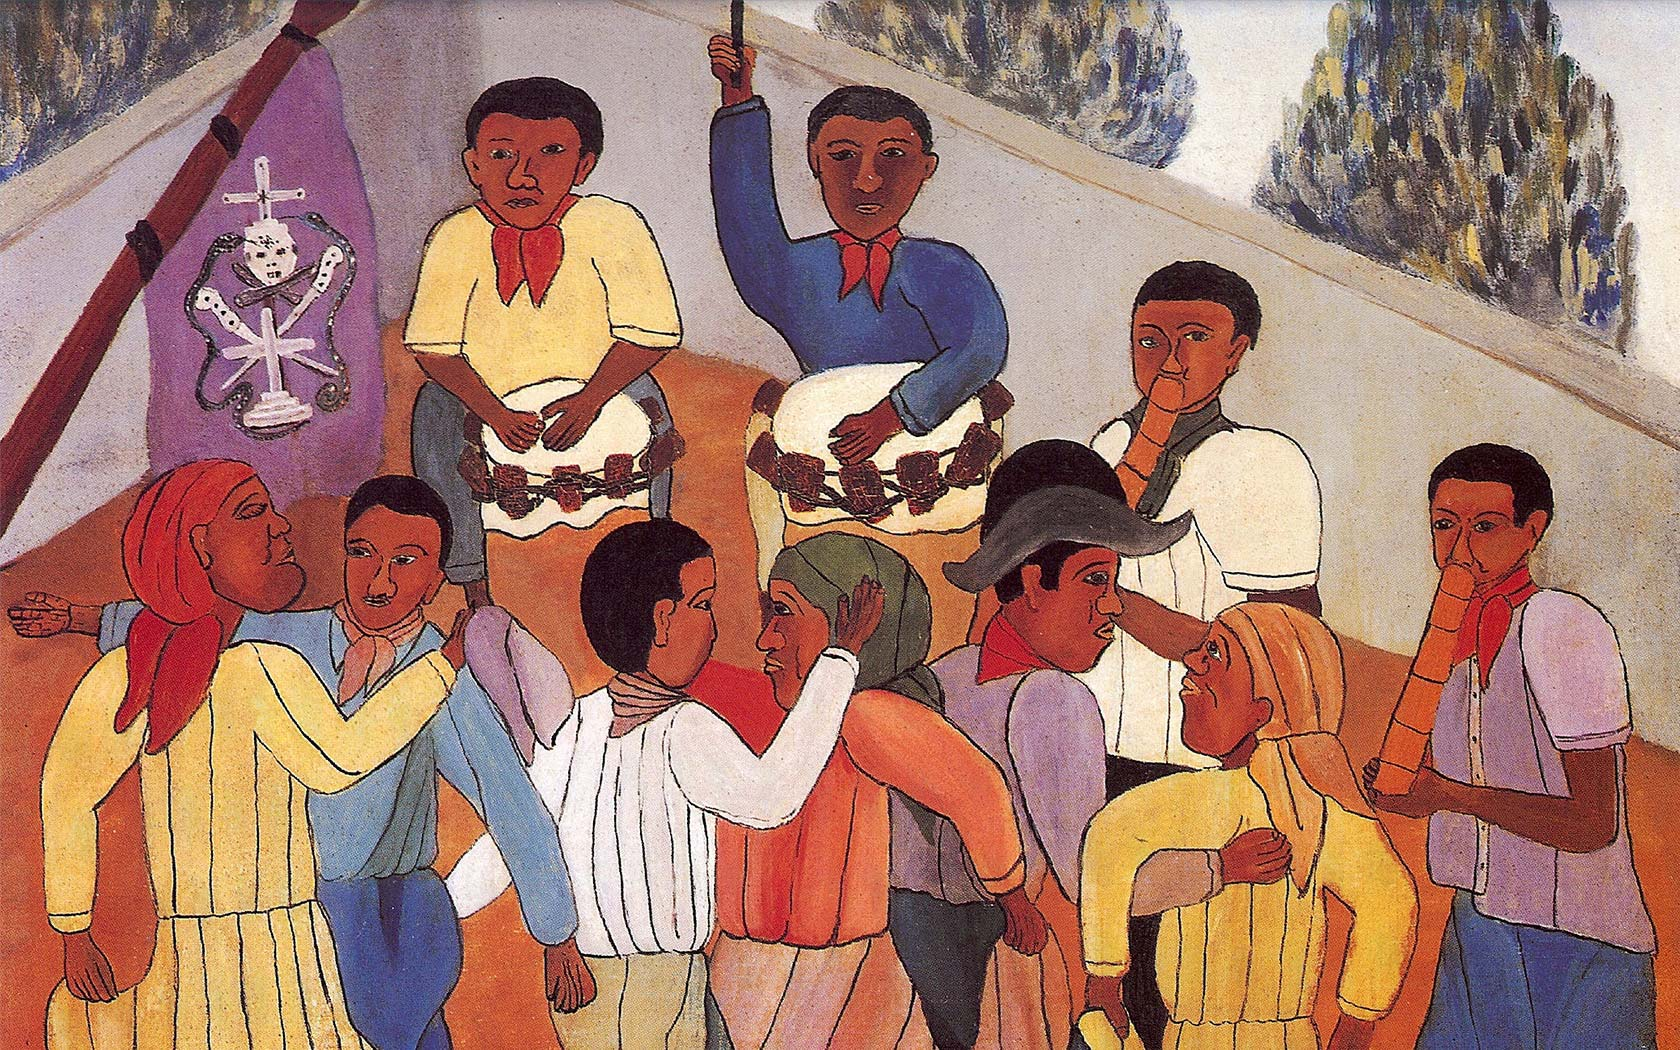 cartoon drawing of people dancing and playing music